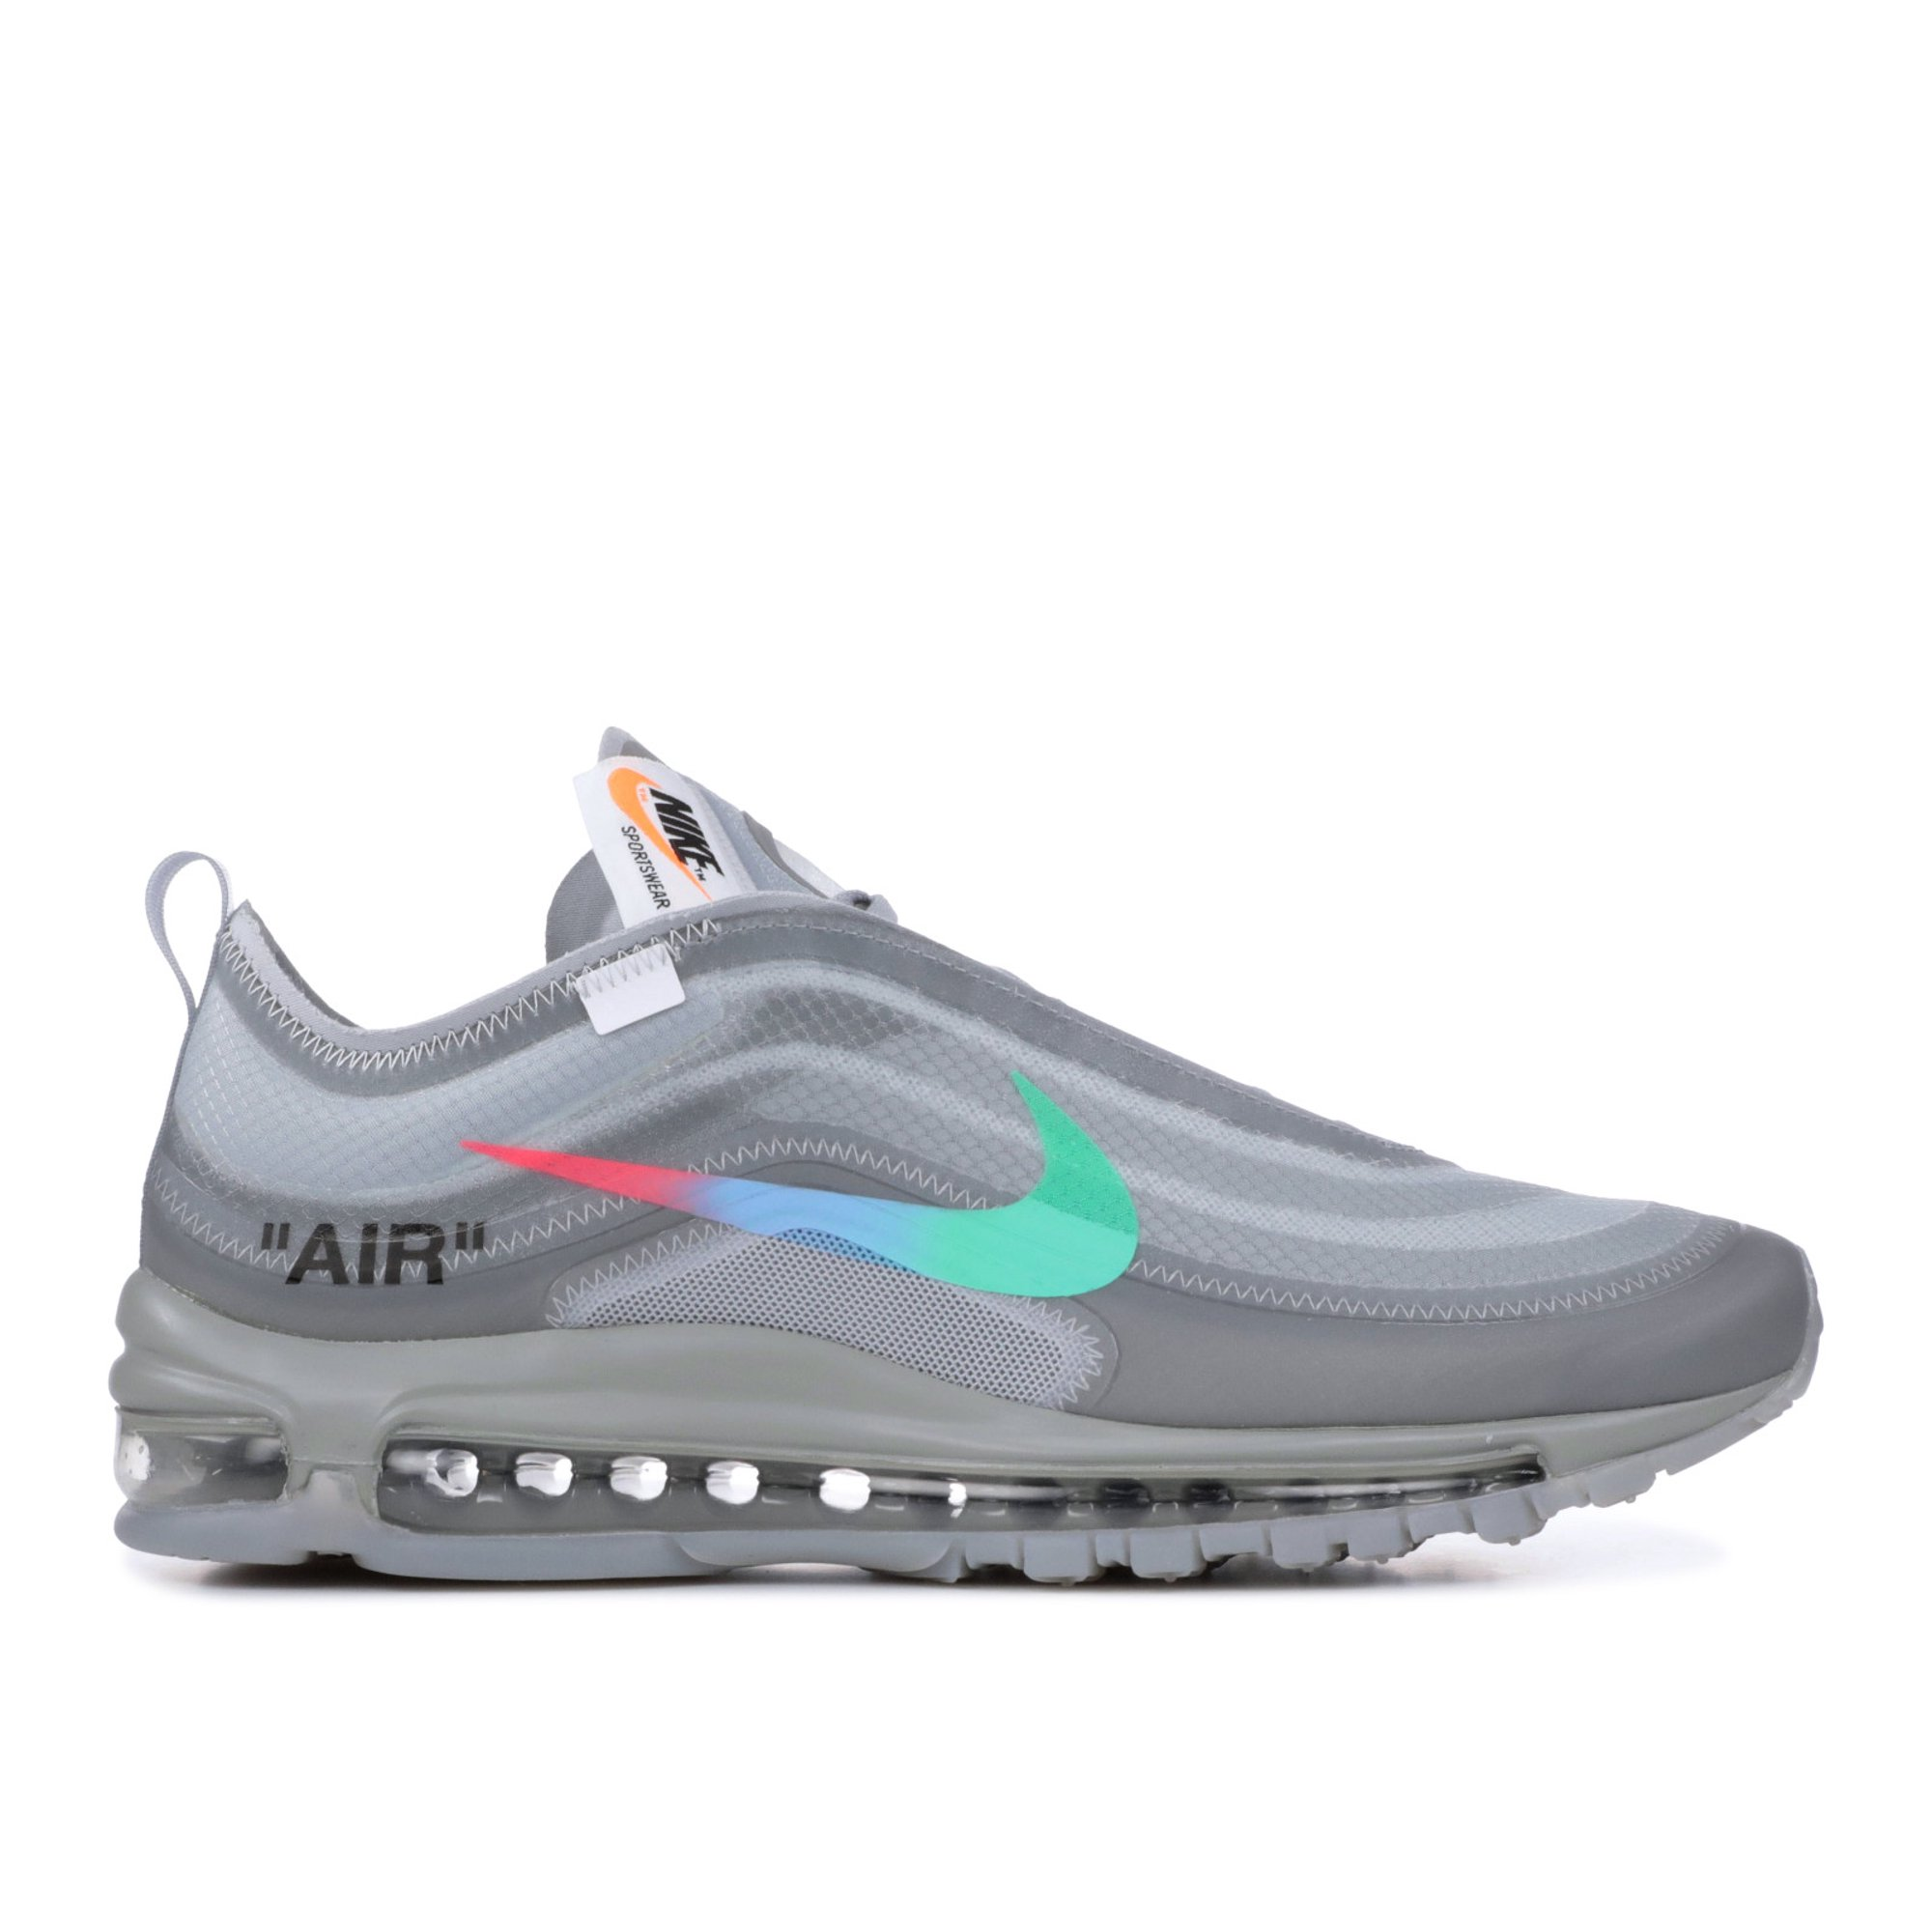 timeless design 536c5 ea7fa Nike - Men - The 10 : Nike Air Max 97 Og 'Off White' - Aj4585-101 - Size 12